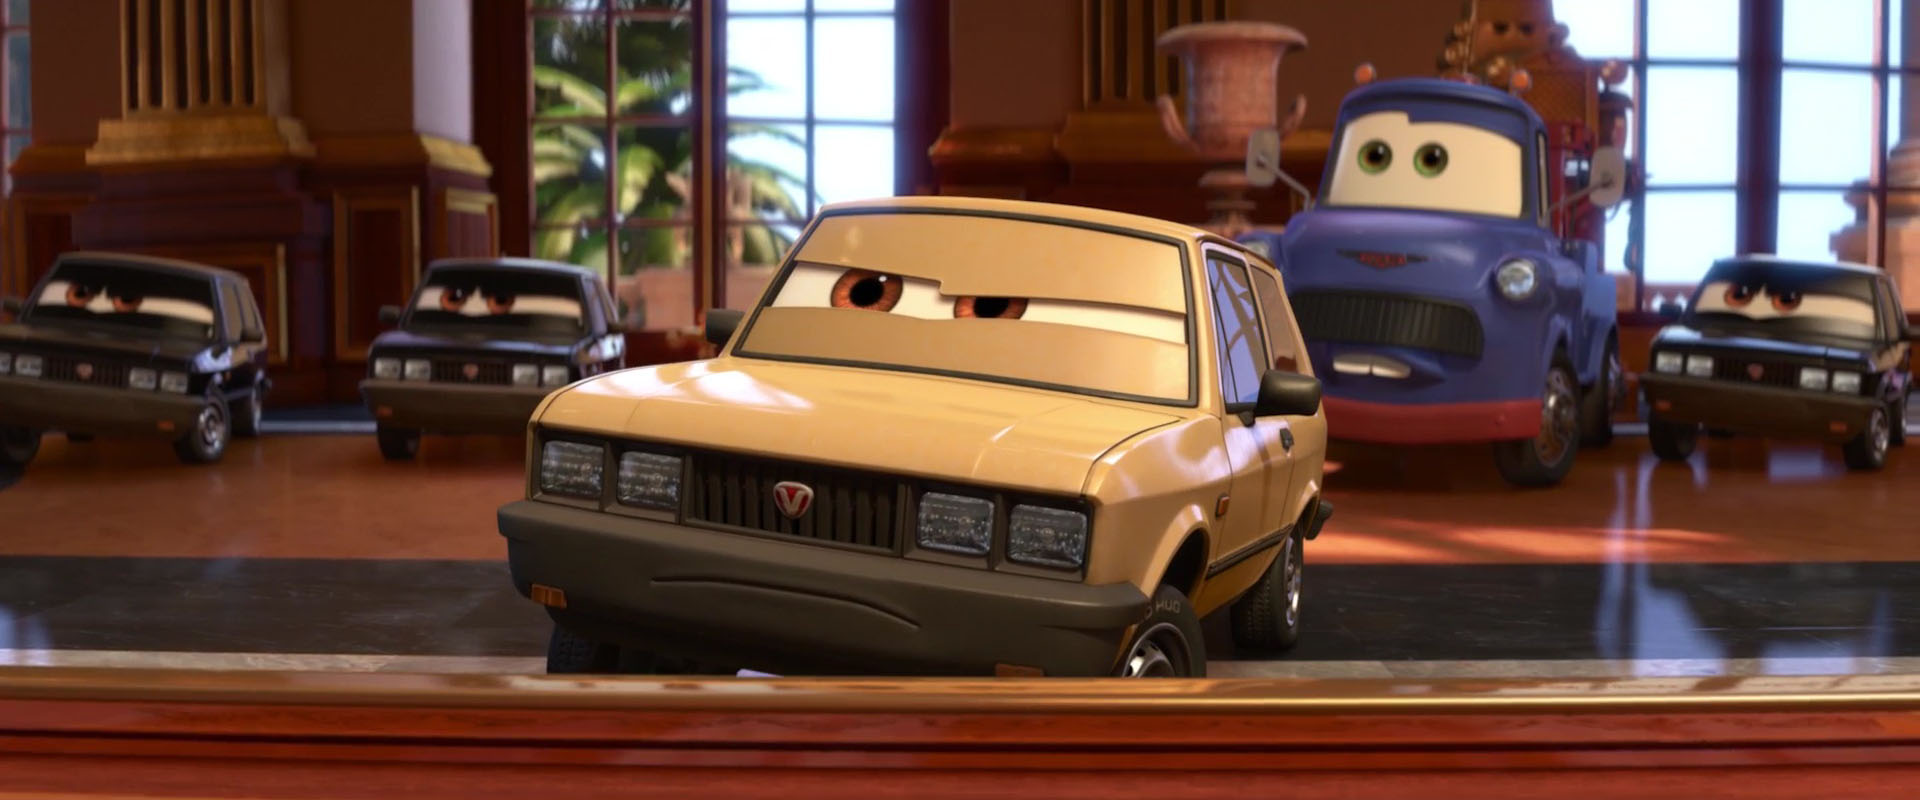 victor-hugo-personnage-cars-2-01